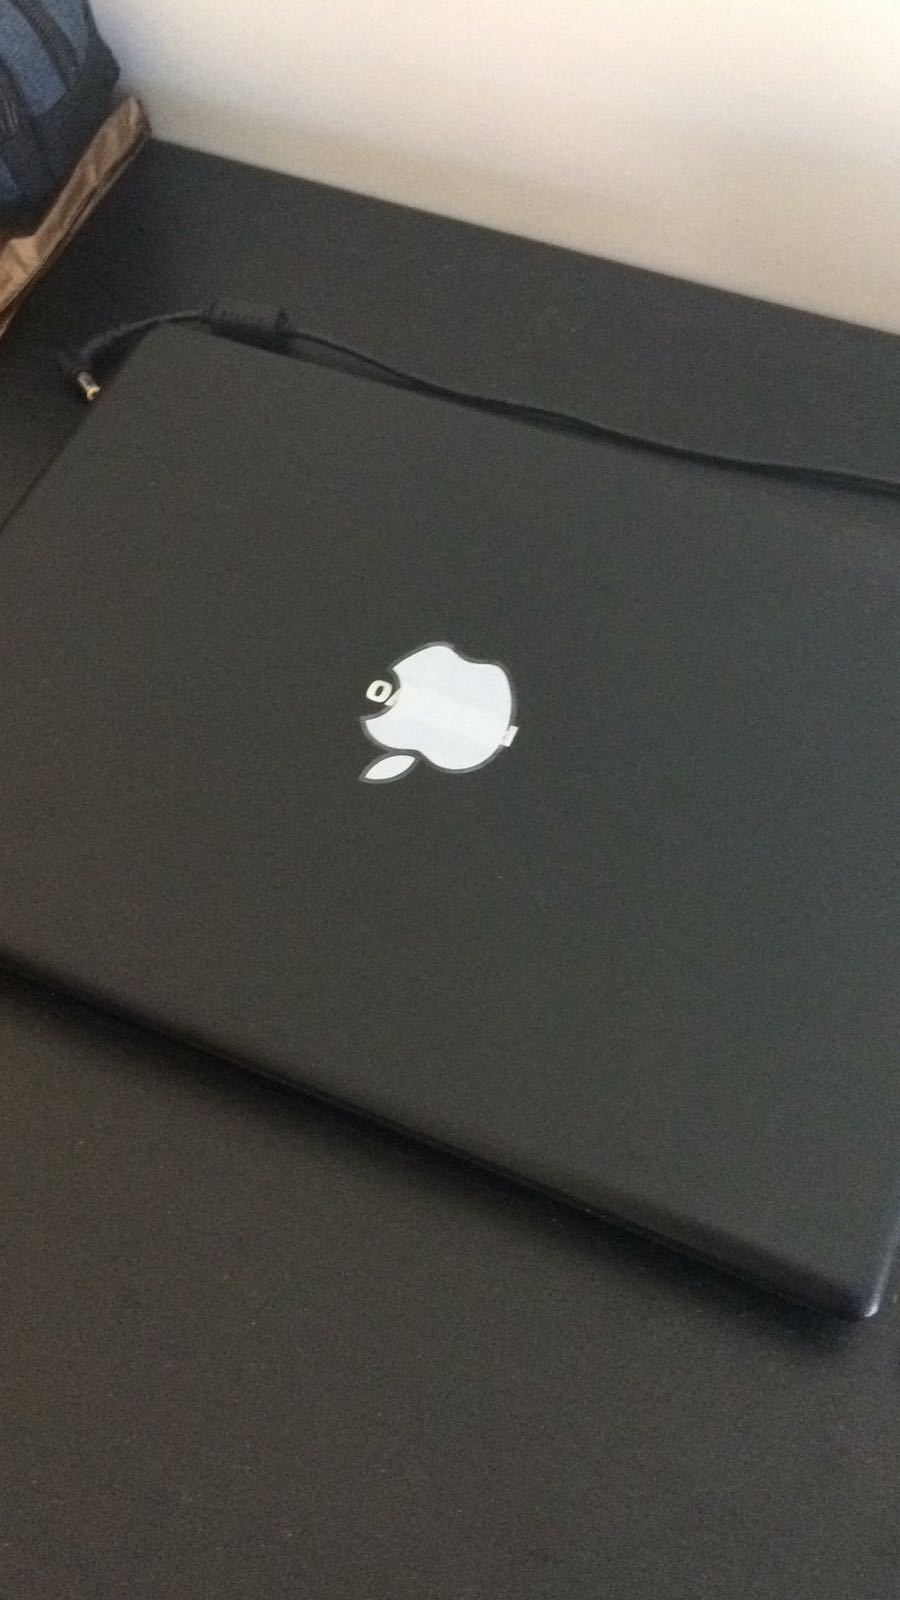 Meu novo macbook :D - meme